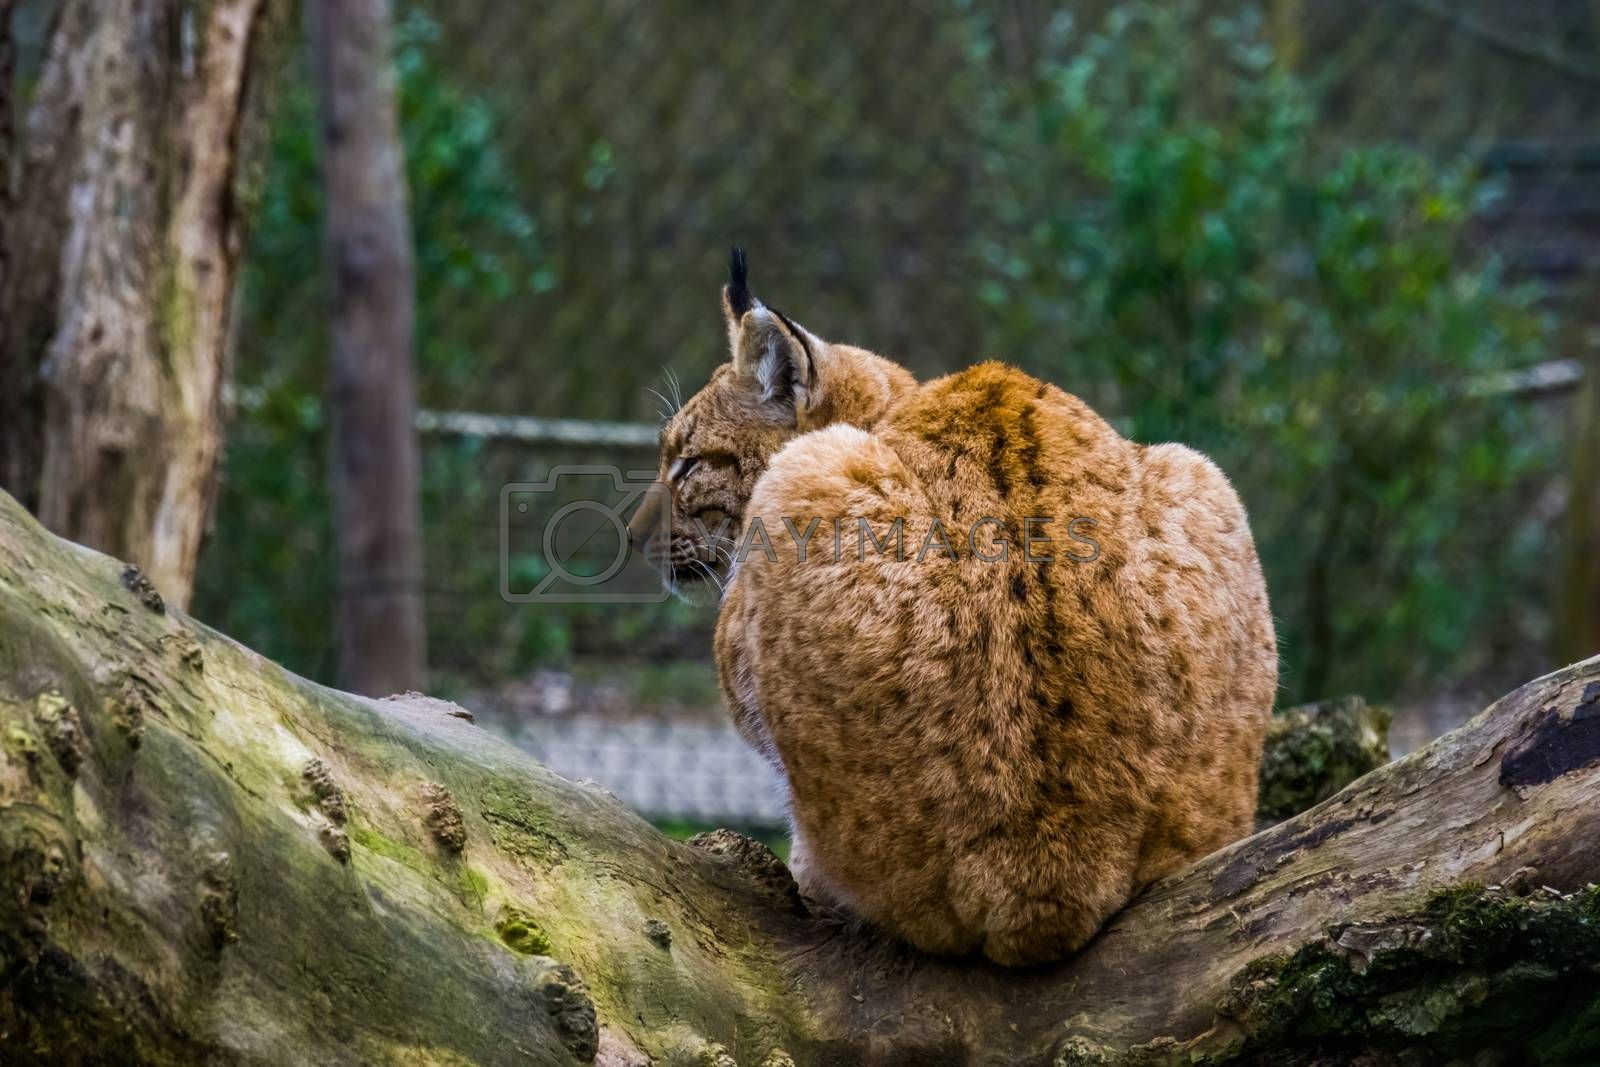 Eurasian lynx in closeup sitting on a tree branch, Wild cat from Eurasia